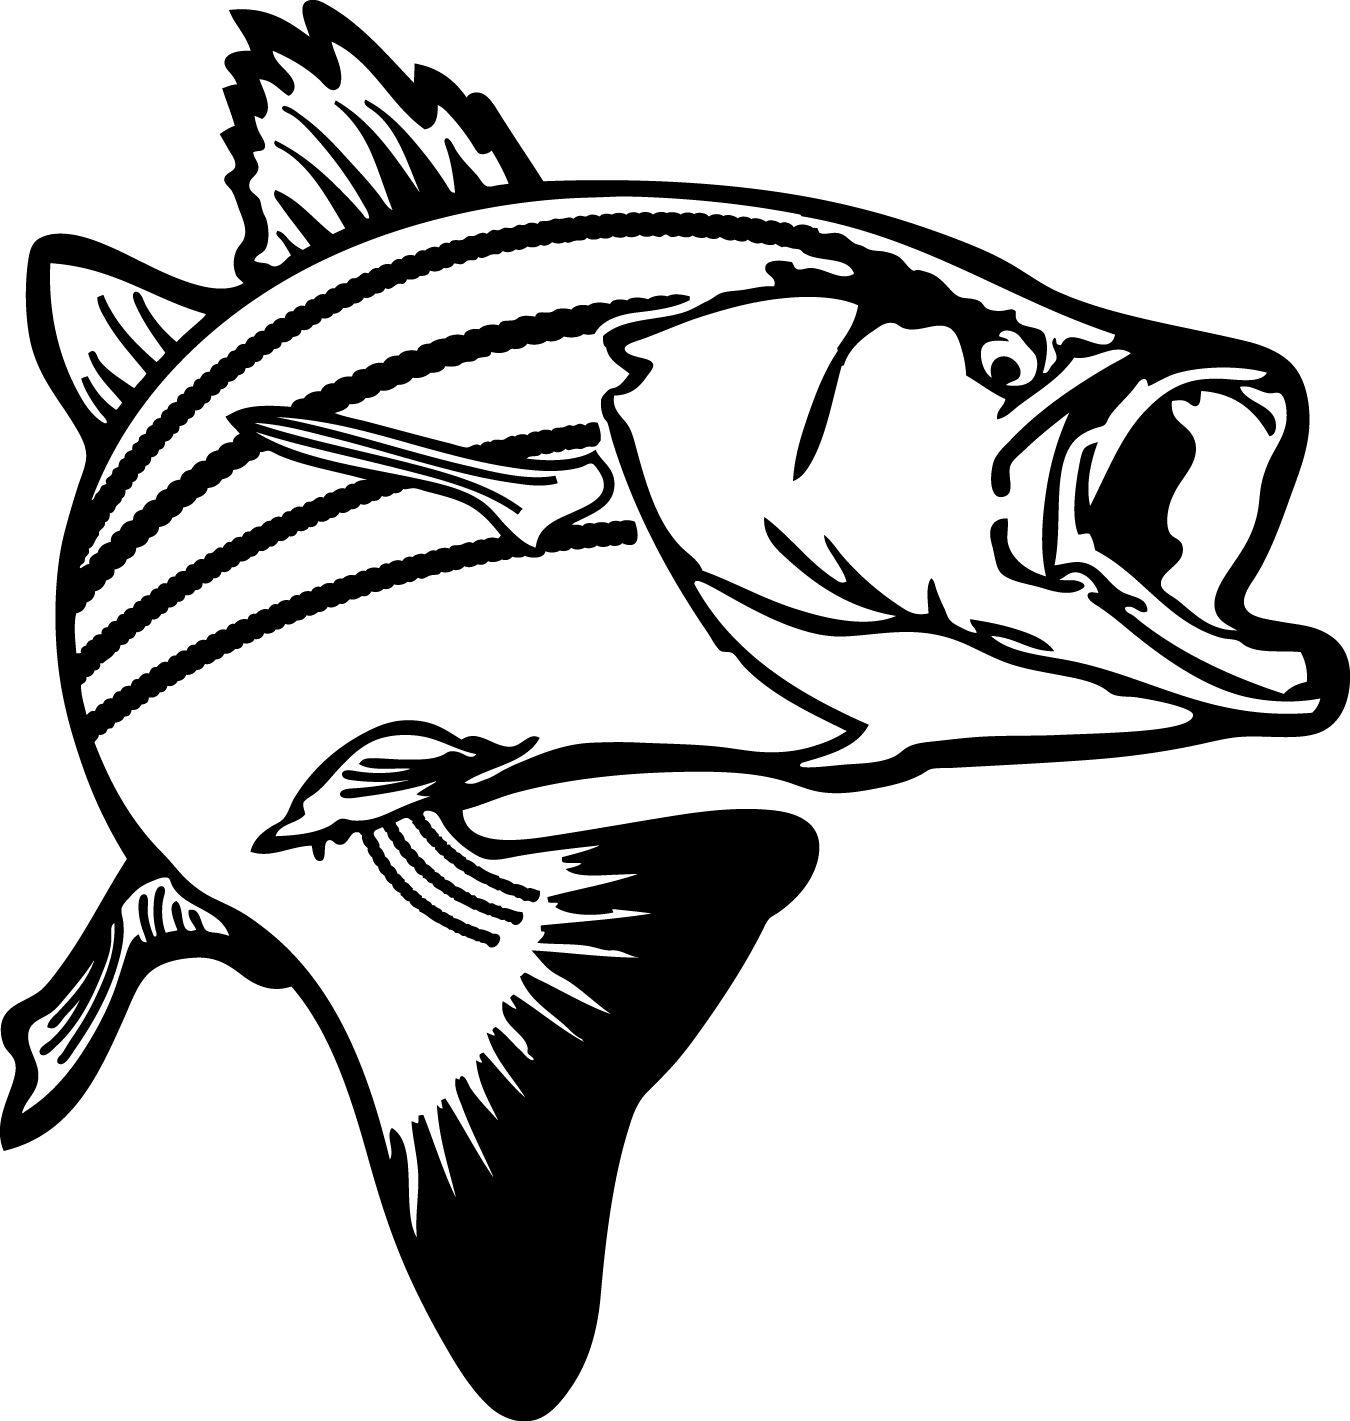 largemouth bass outline largemouth bass outline clipart best largemouth outline bass